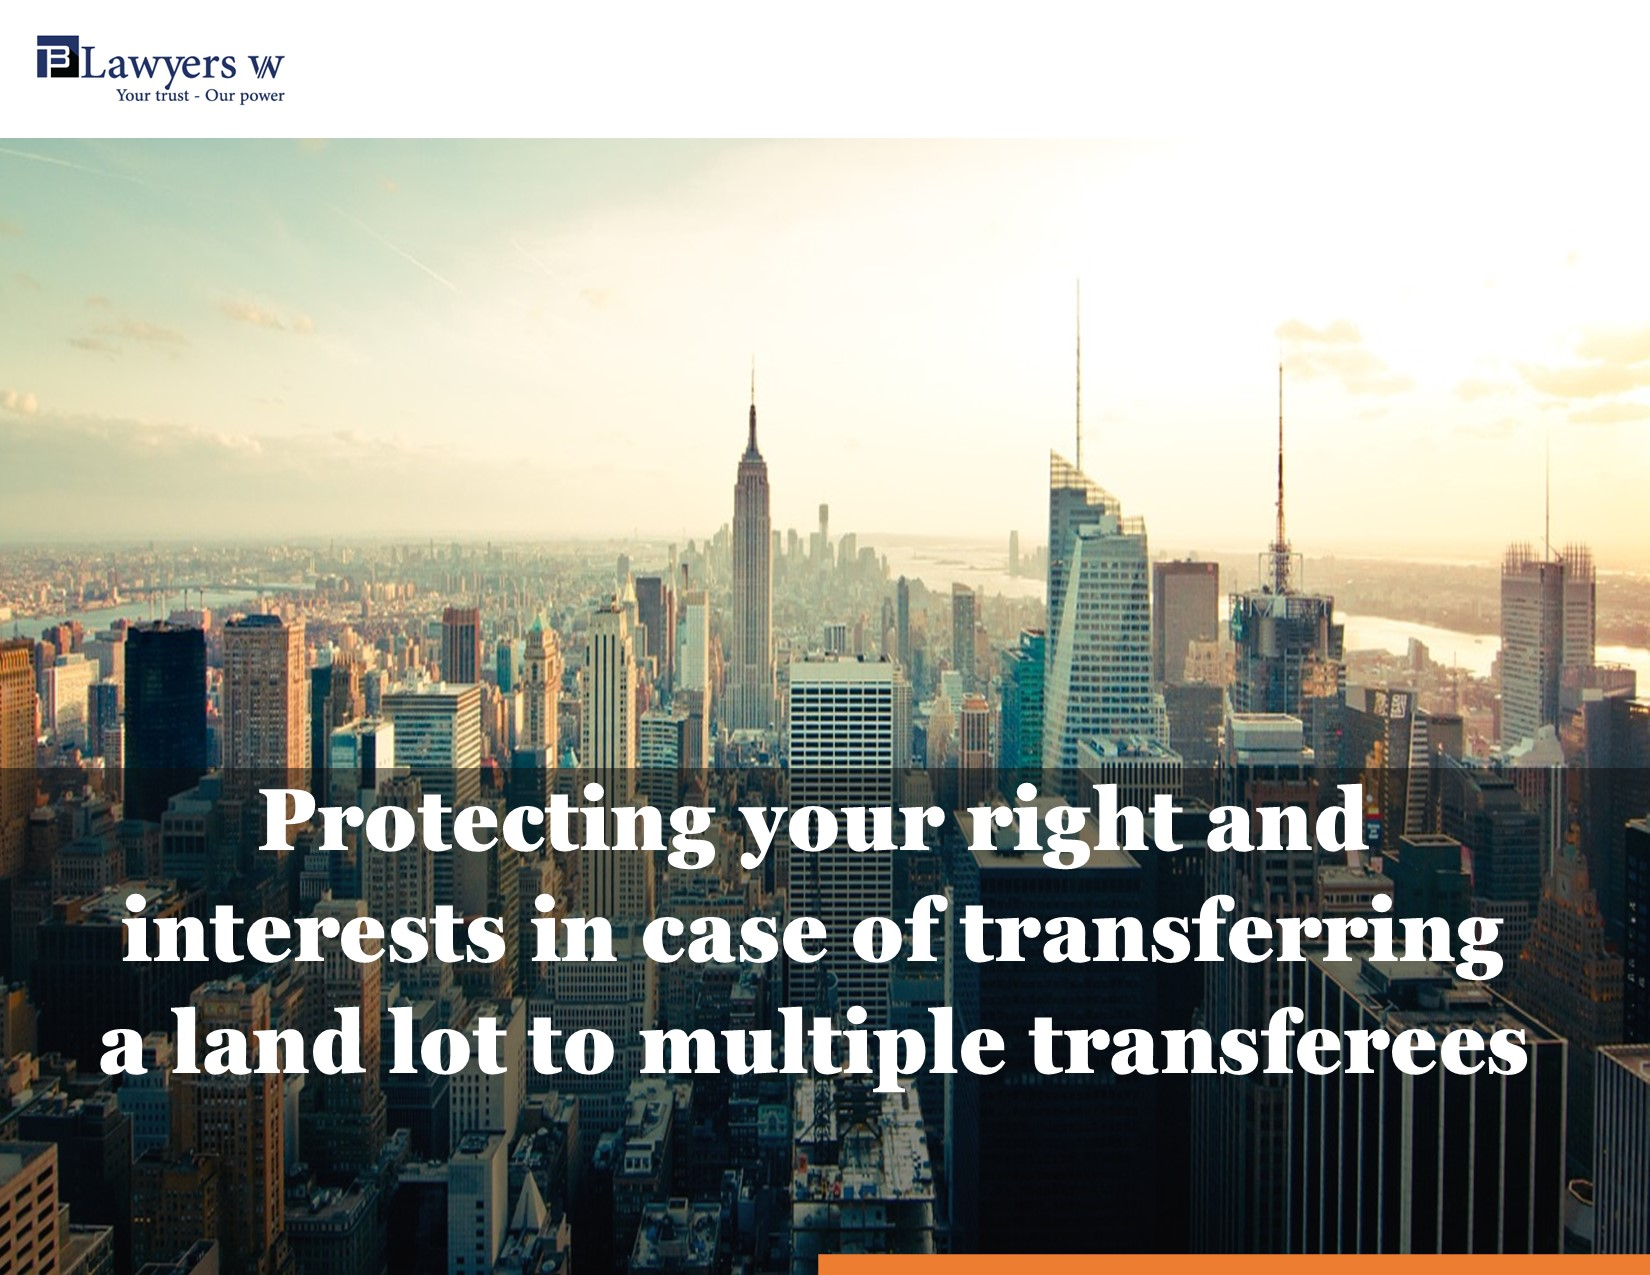 Protecting your right and interests in case of transferring a land lot to multiple transferees